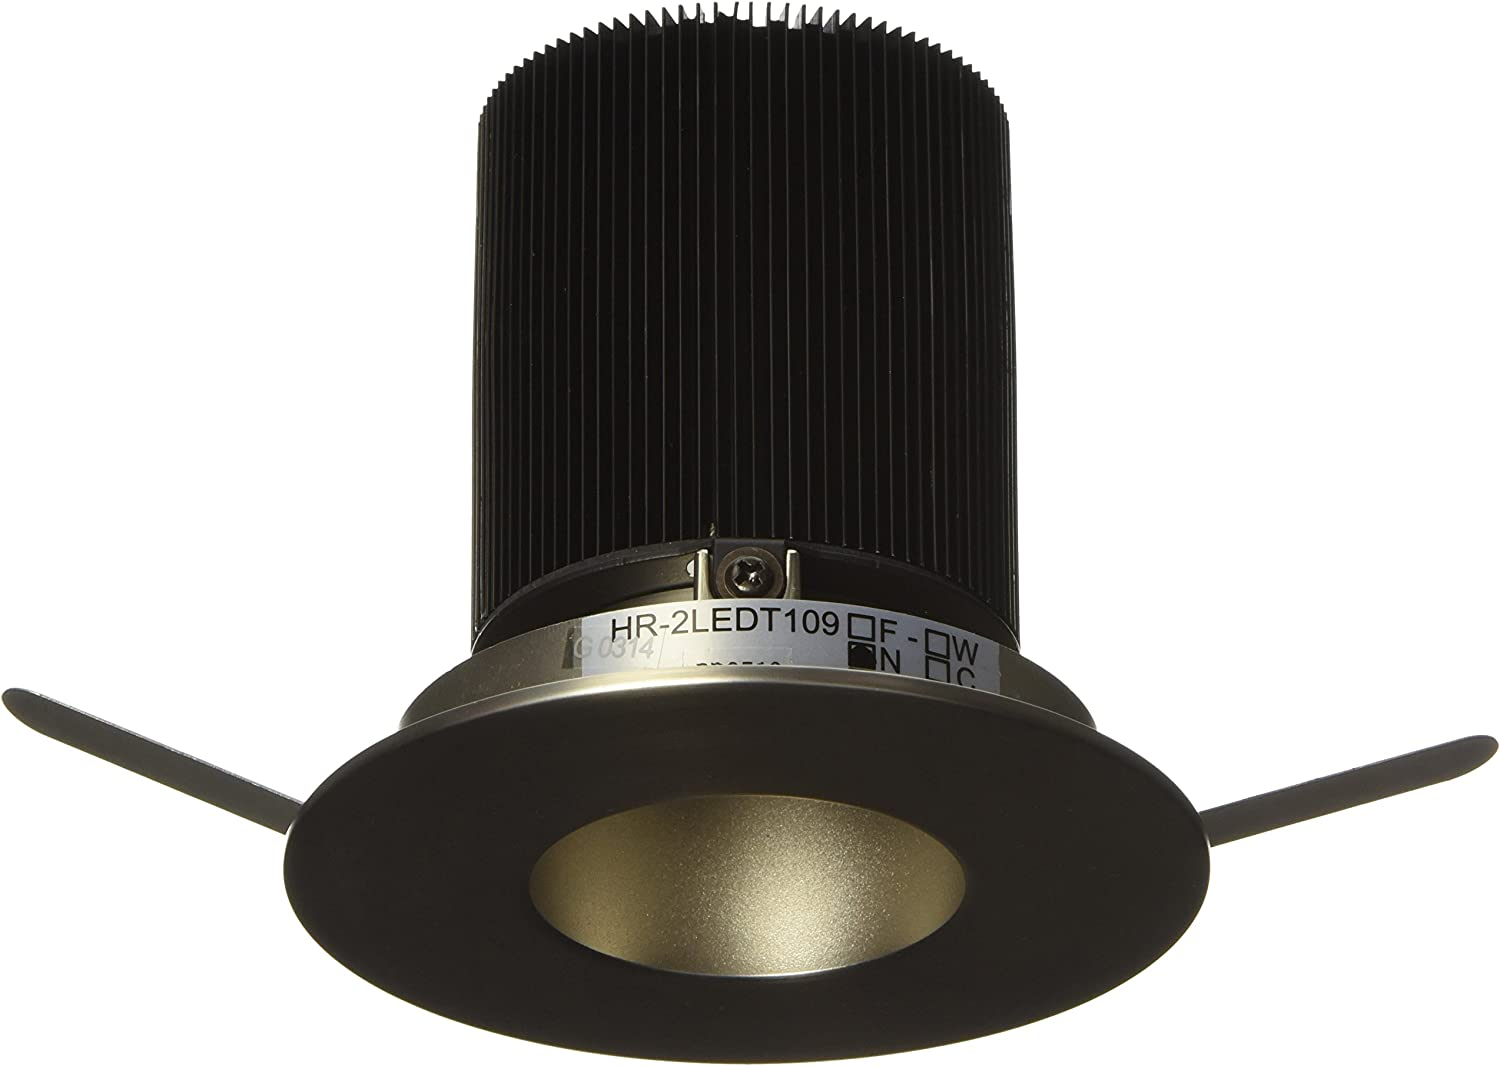 B00ECF96NQ WAC Lighting HR-2LED-T109N-27BN Tesla - LED 2-Inch Open Round Trim with 26-Degree Beam Angle and Warm Light 2700K 81x-RPckMGL.SL1500_